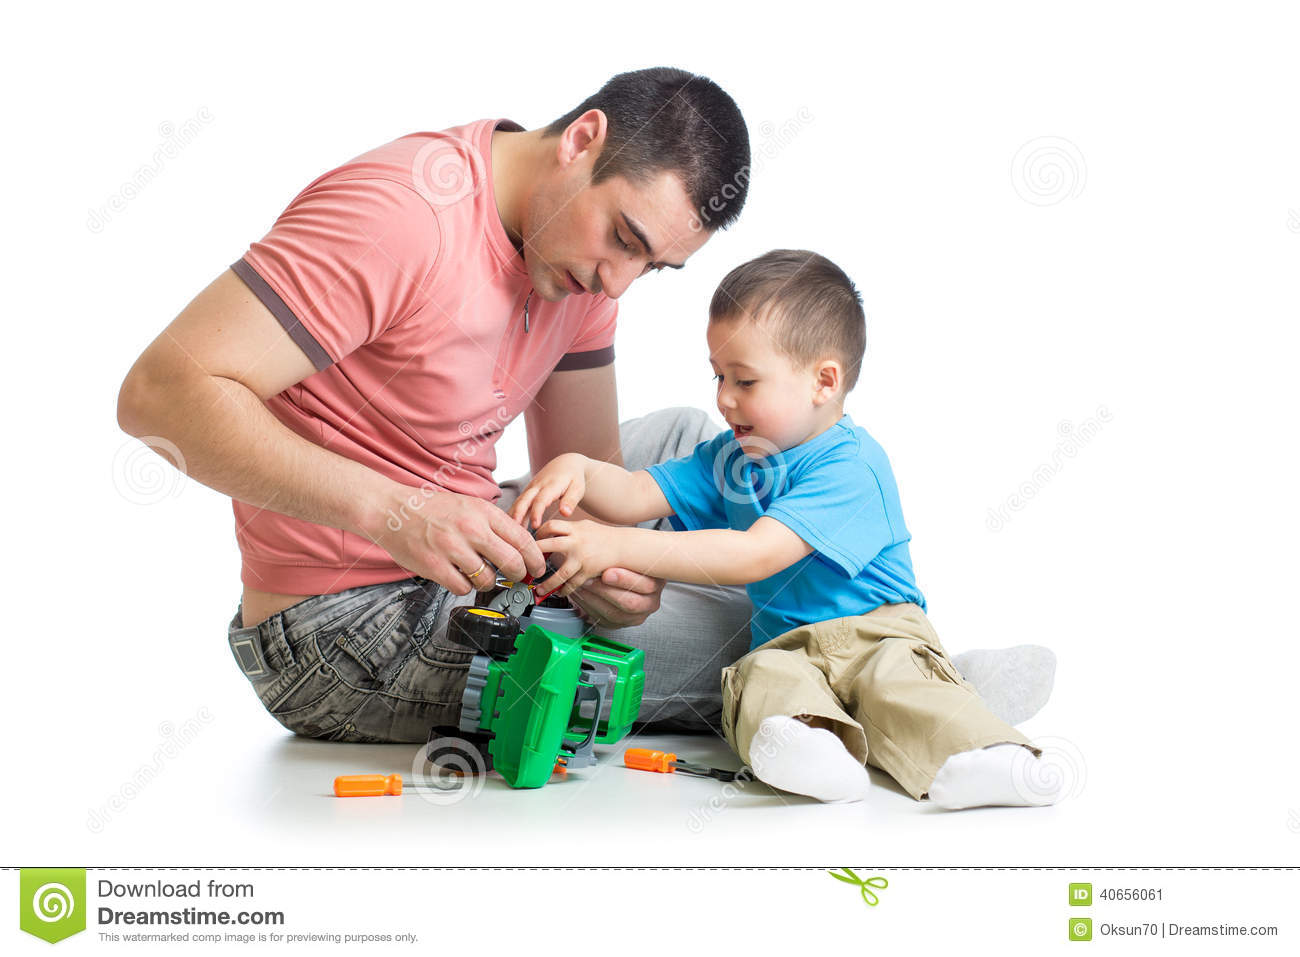 Boy Toys For Dads : Kid boy and his father repair toy car